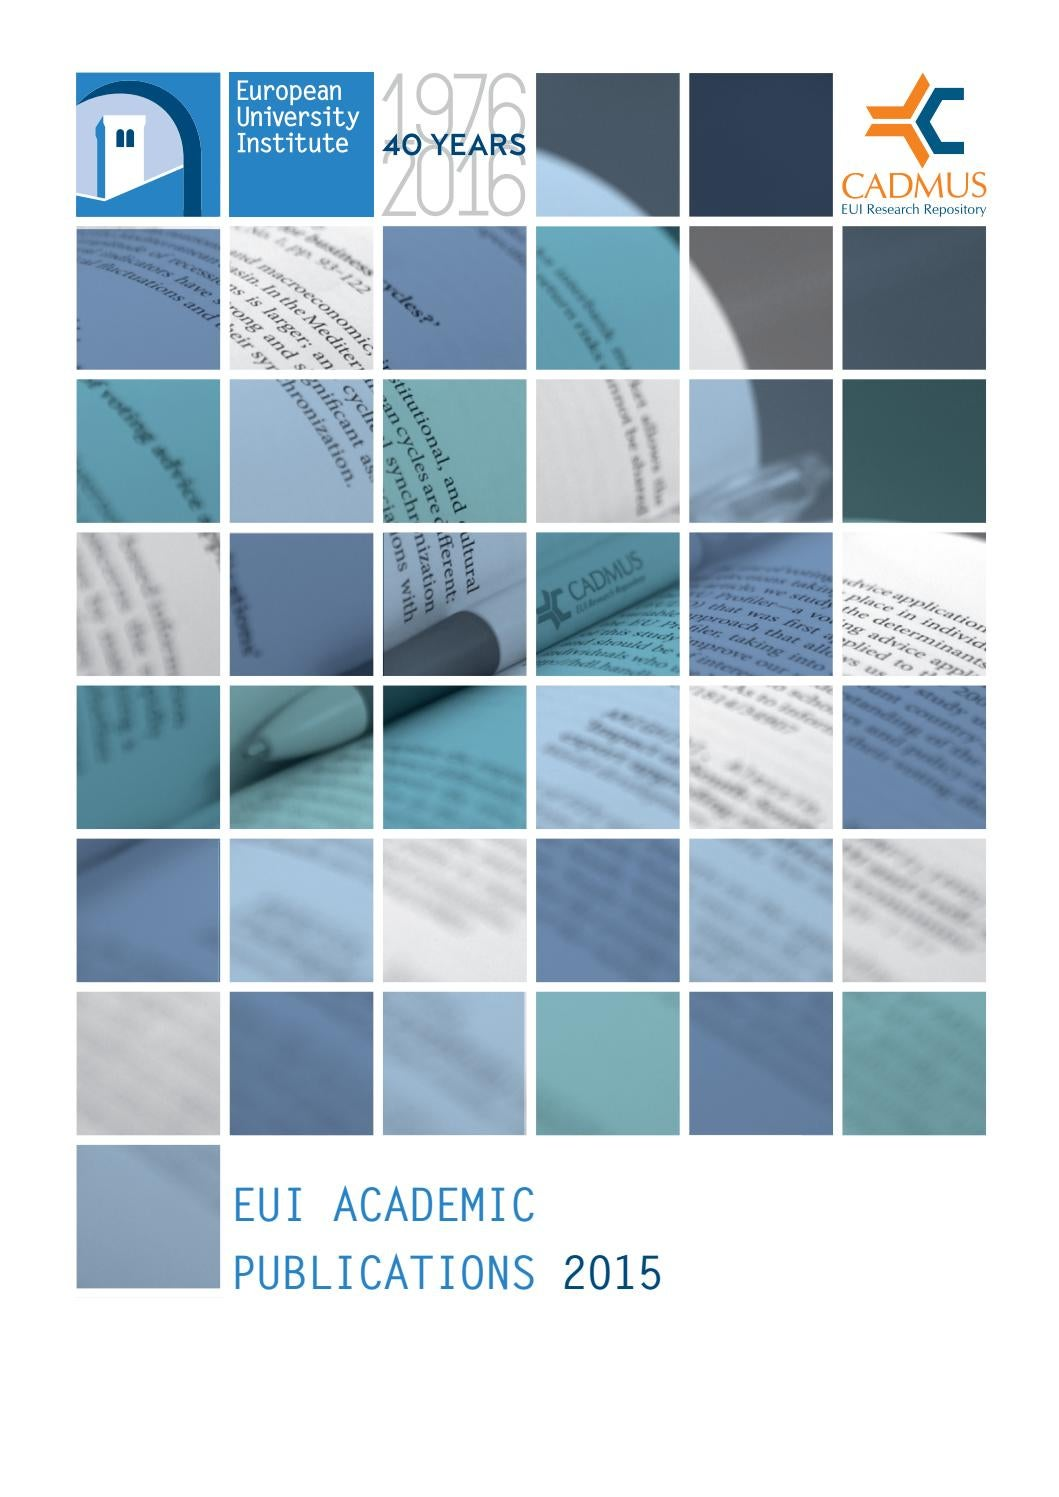 97515a577837 EUI Academic Publications 2015 by European University Institute - issuu